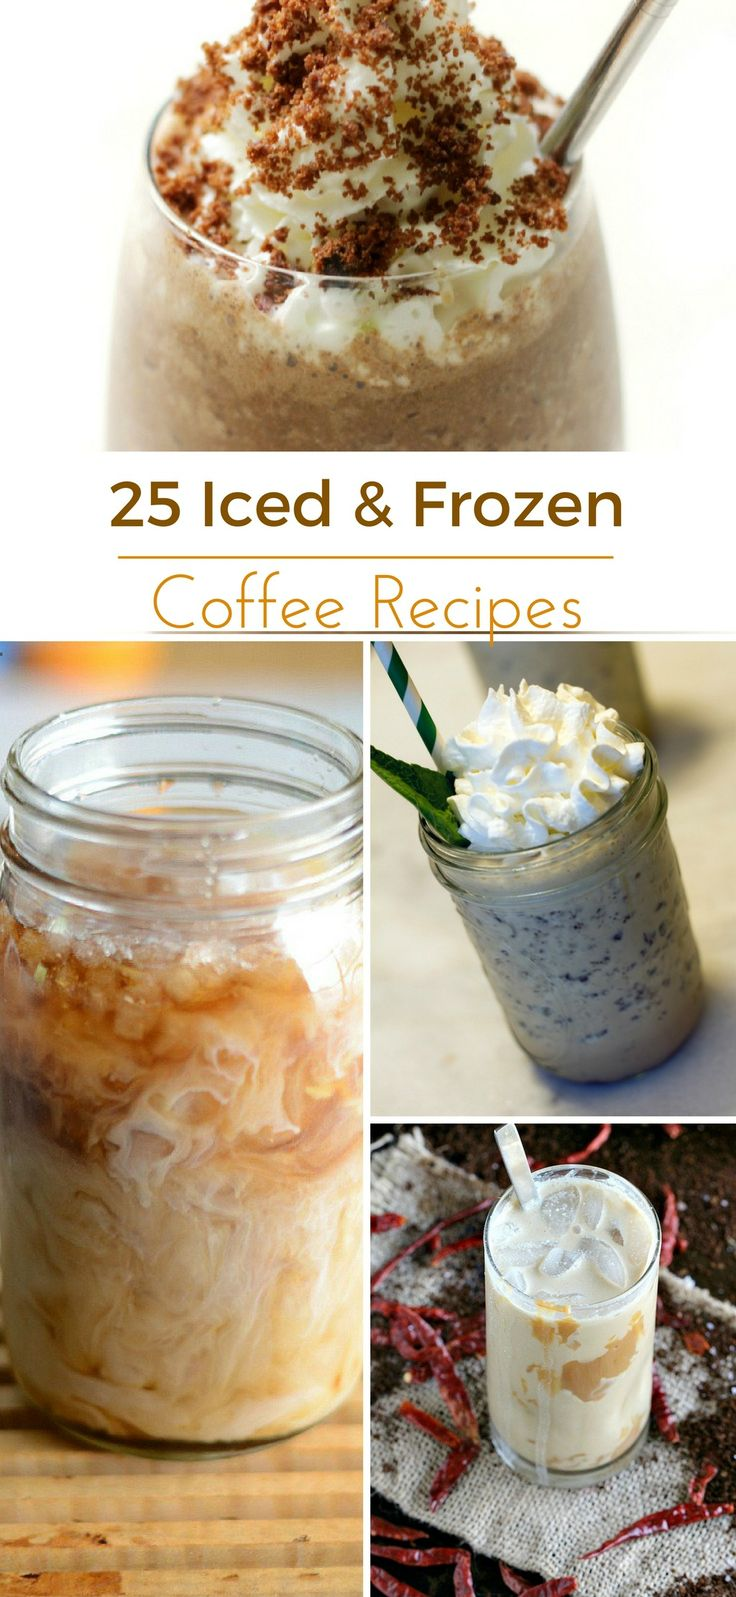 Here are 25 iced coffee recipes and frozen coffee drink recipes for your summer enjoyment! Expect frappuccinos, coffee cocktails and more!